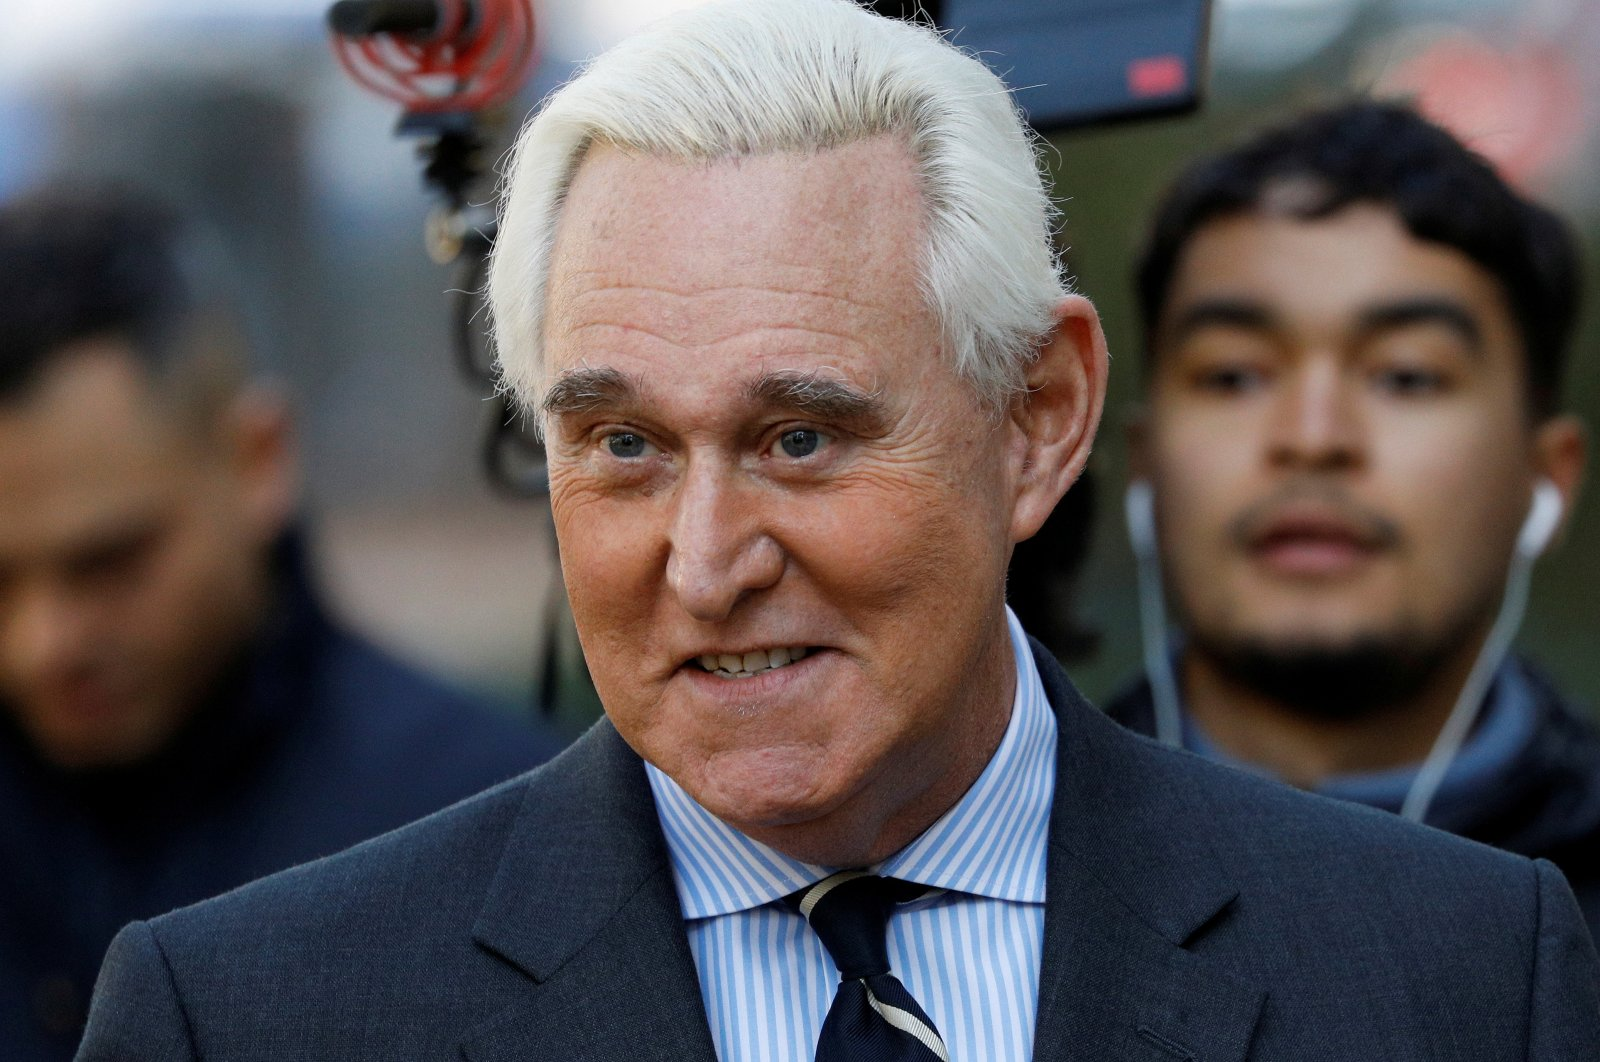 Roger Stone, former campaign adviser to U.S. President Donald Trump, arrives for his criminal trial on charges of lying to Congress, obstructing justice and witness tampering at U.S. District Court in Washington, U.S., Nov. 6, 2019. (Reuters Photo)